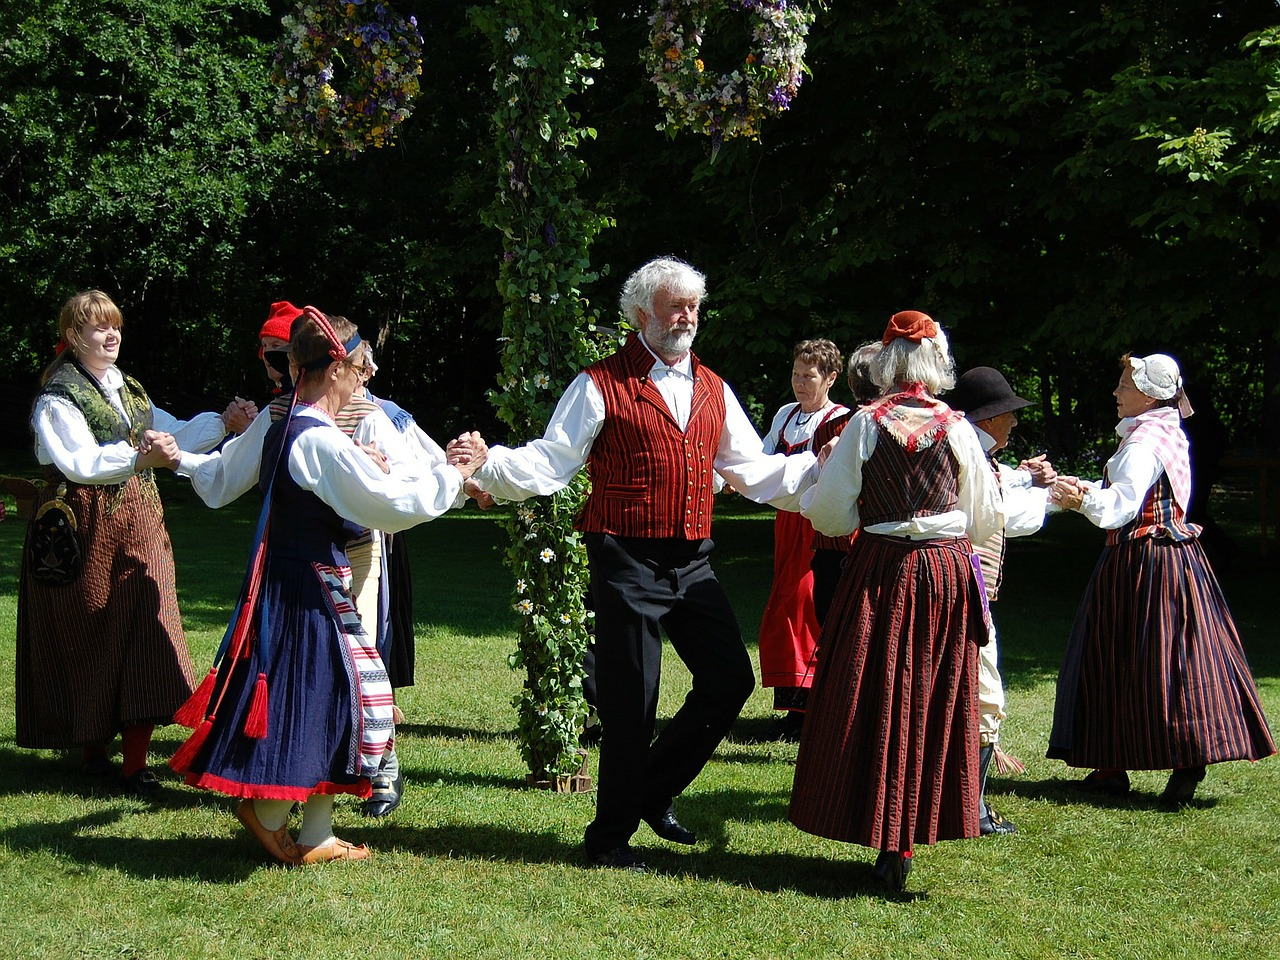 folk-dance folk dance square dance free photo